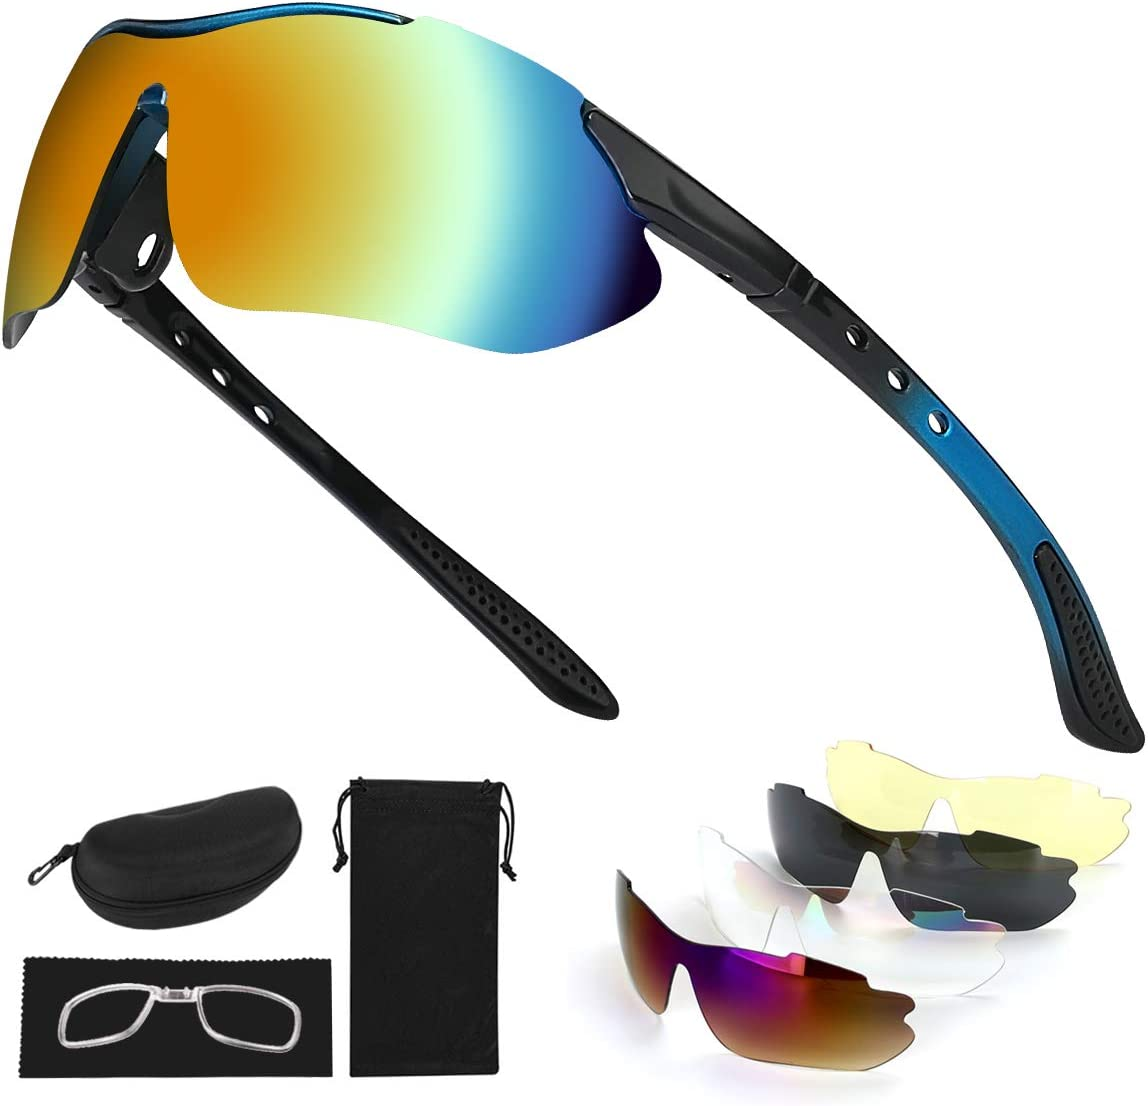 Tancci Sports Cycling Sunglasses, Bicycle Glasses with 5 Interchangeable Lenses-Ergonomic with Reducing Harmful UVA & UVB Rays for Men&Women Running/Golf/Fishing/Cycling/Outdoor Sports